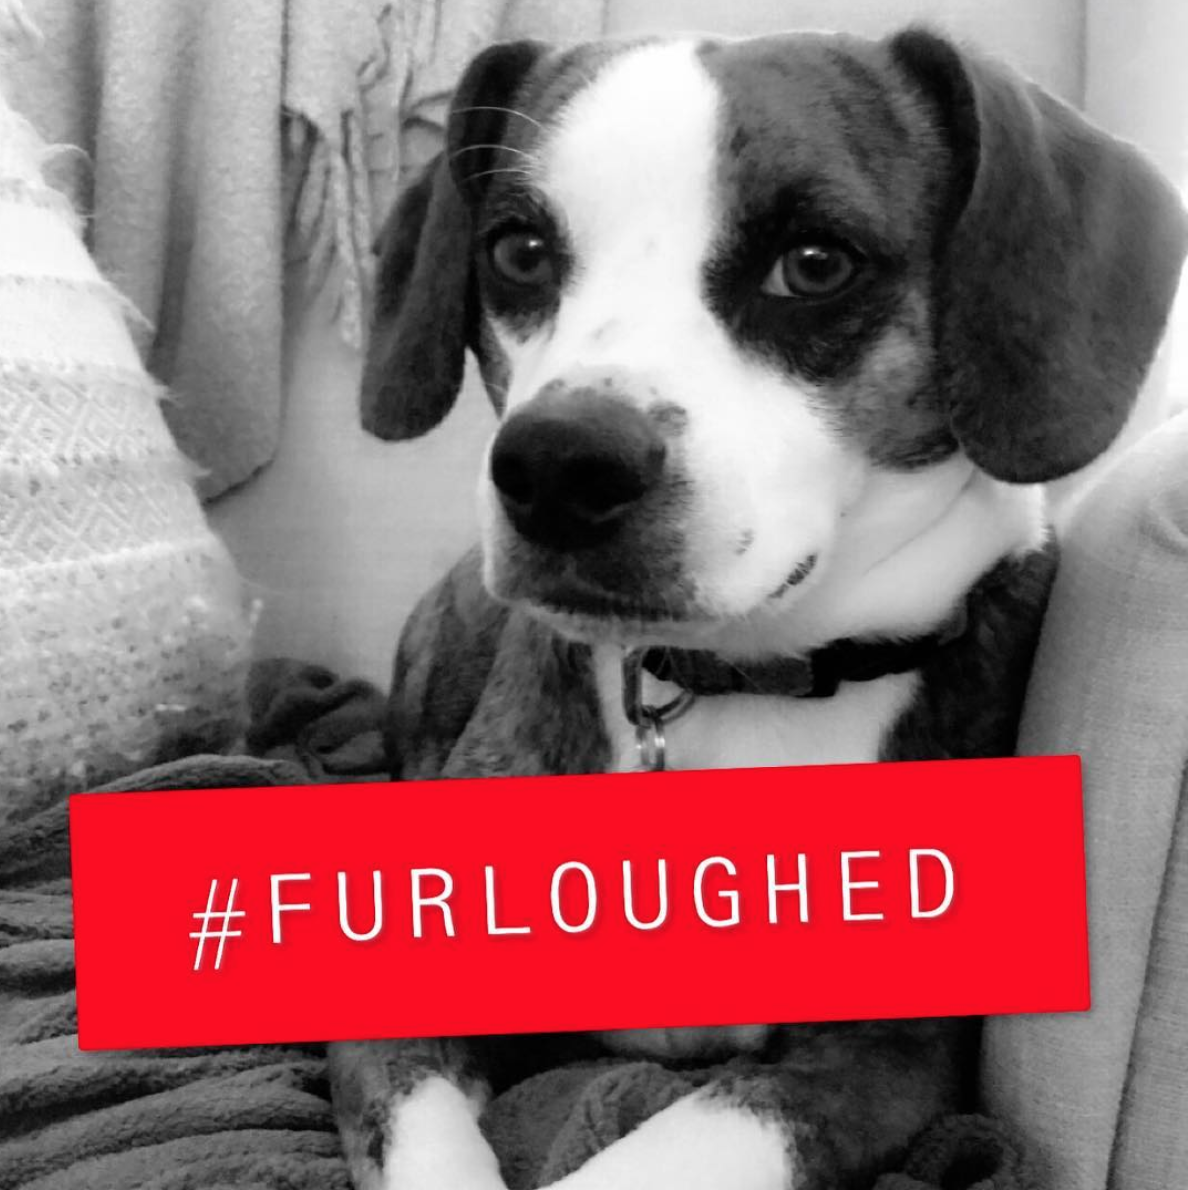 D.C. has slowed to a snail's pace as the government shut down trudges on, but the pets of furloughed employees have been getting lots of extra cuddles and walks. Here are some of the cutest pets from #FURlough on Instagram. (Image via @wethepeopledc)